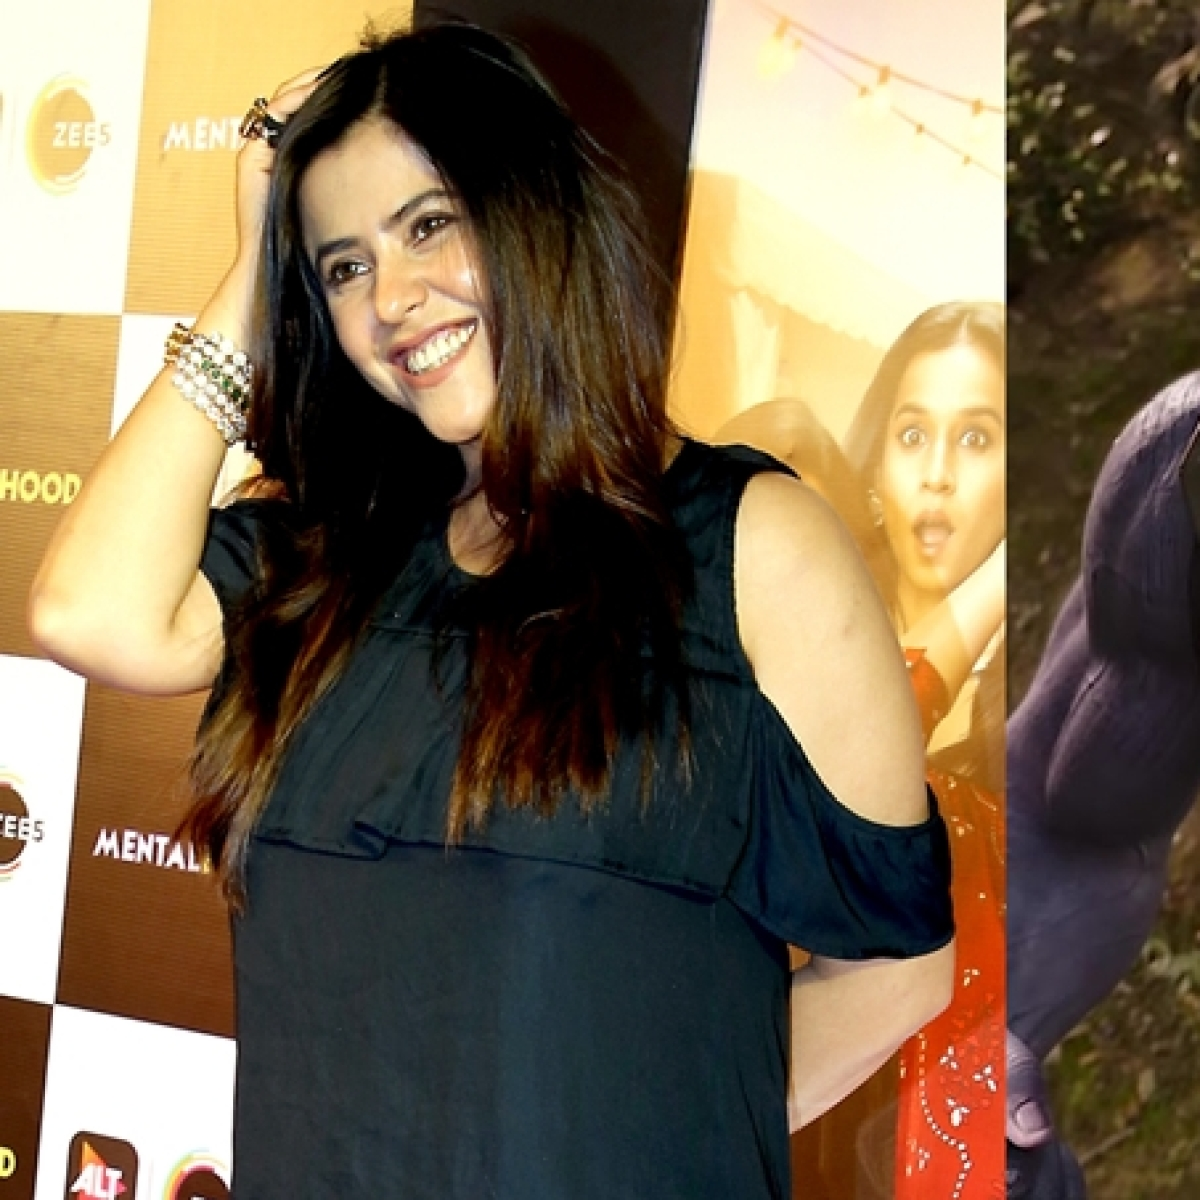 Thanos has left the building: Ekta Kapoor takes off her signature rings and bracelets